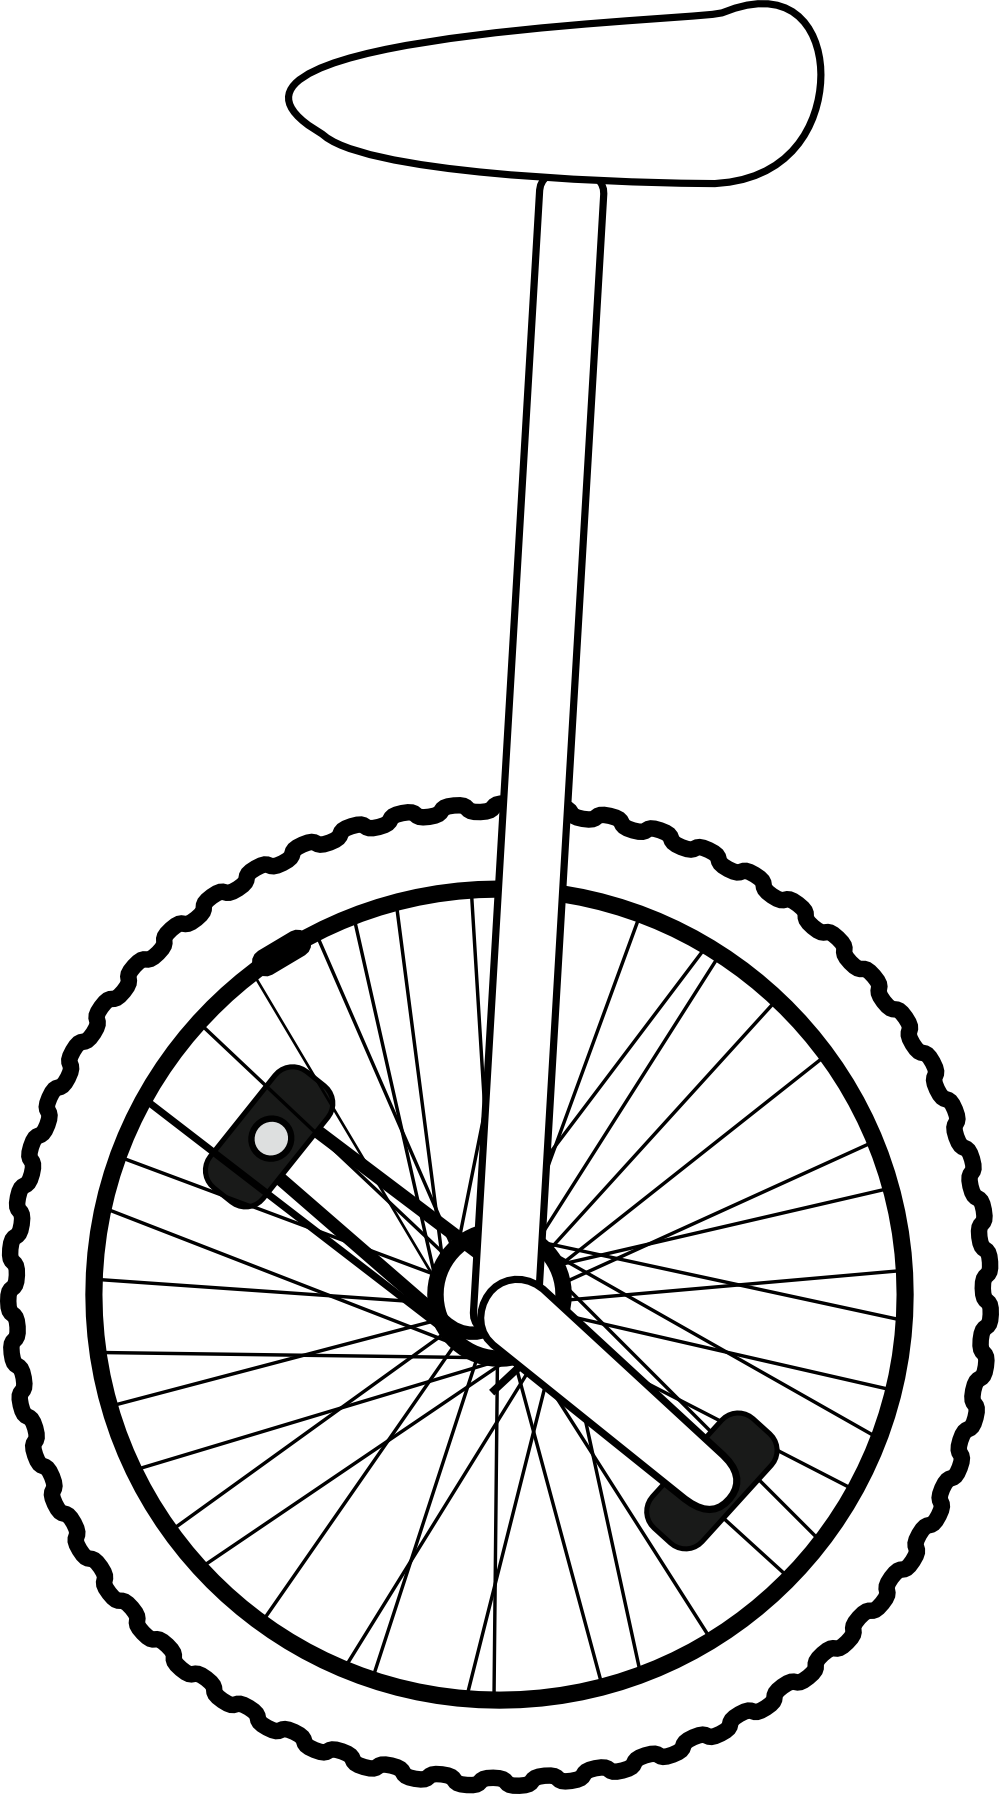 clipart library stock Clipart black and white. Unicycle drawing